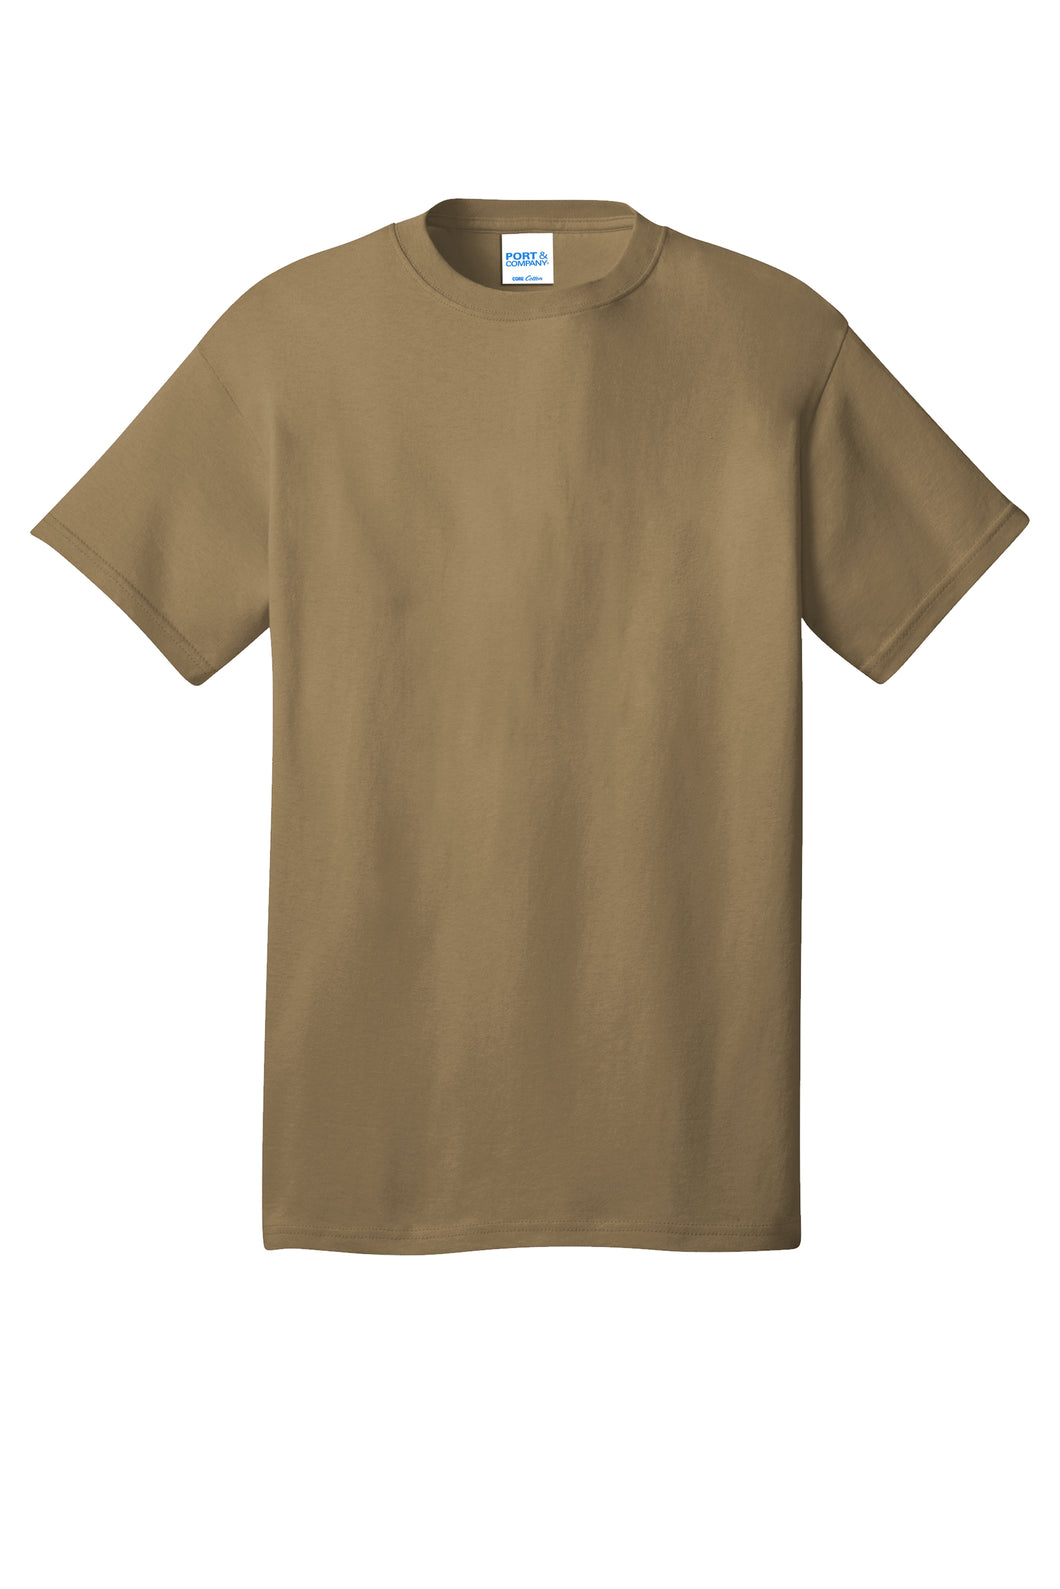 Port & Company® Core Cotton Tee- PC54 Coyote Brown Printed 1 Color